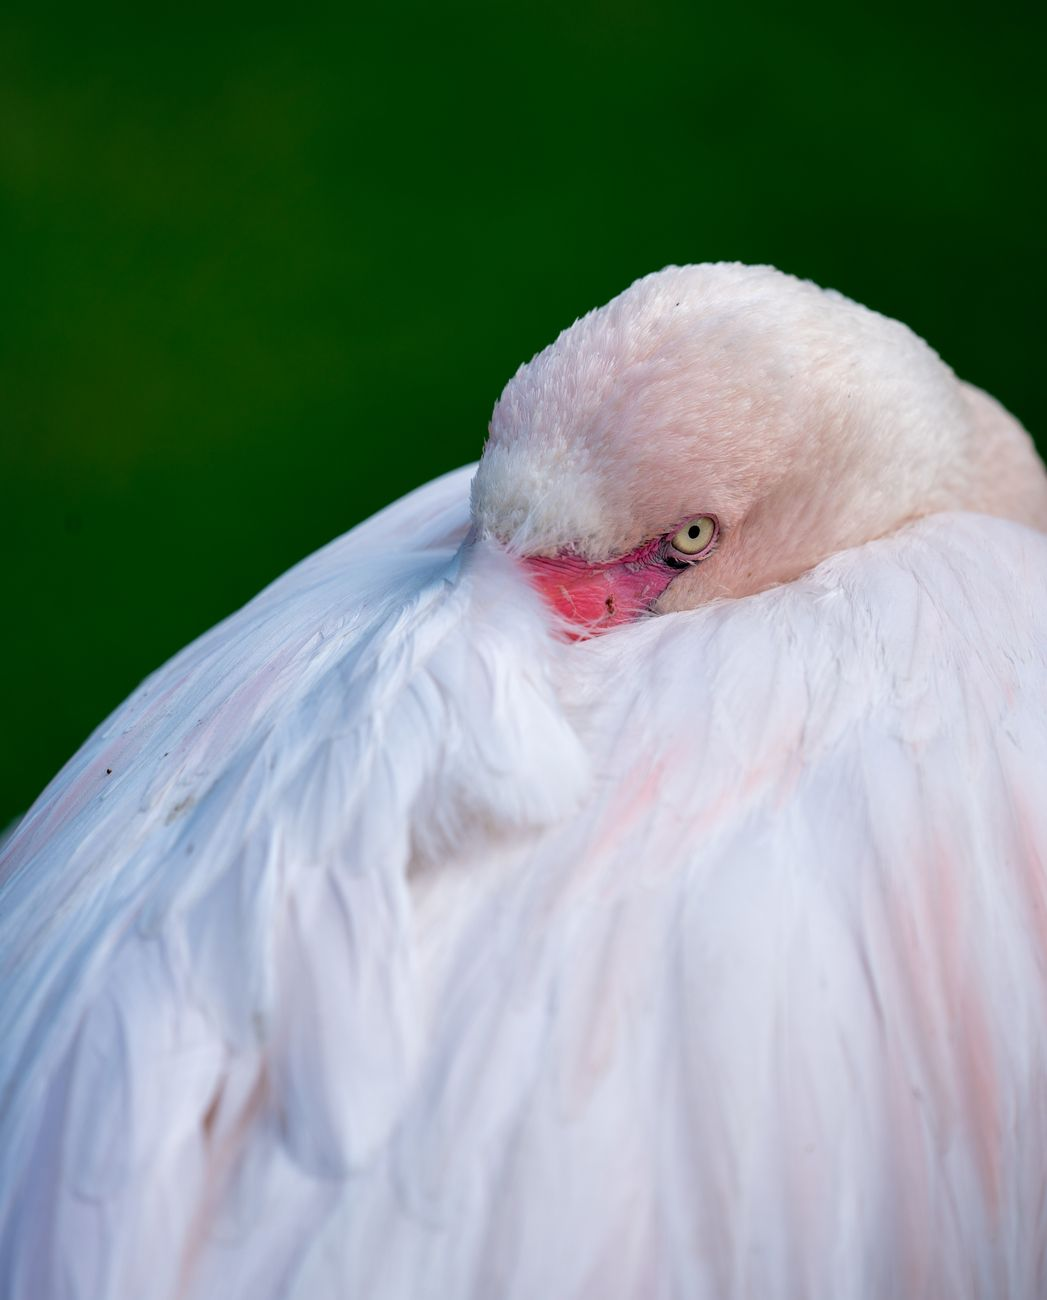 Shy Flamingo, bird, animal, feathers